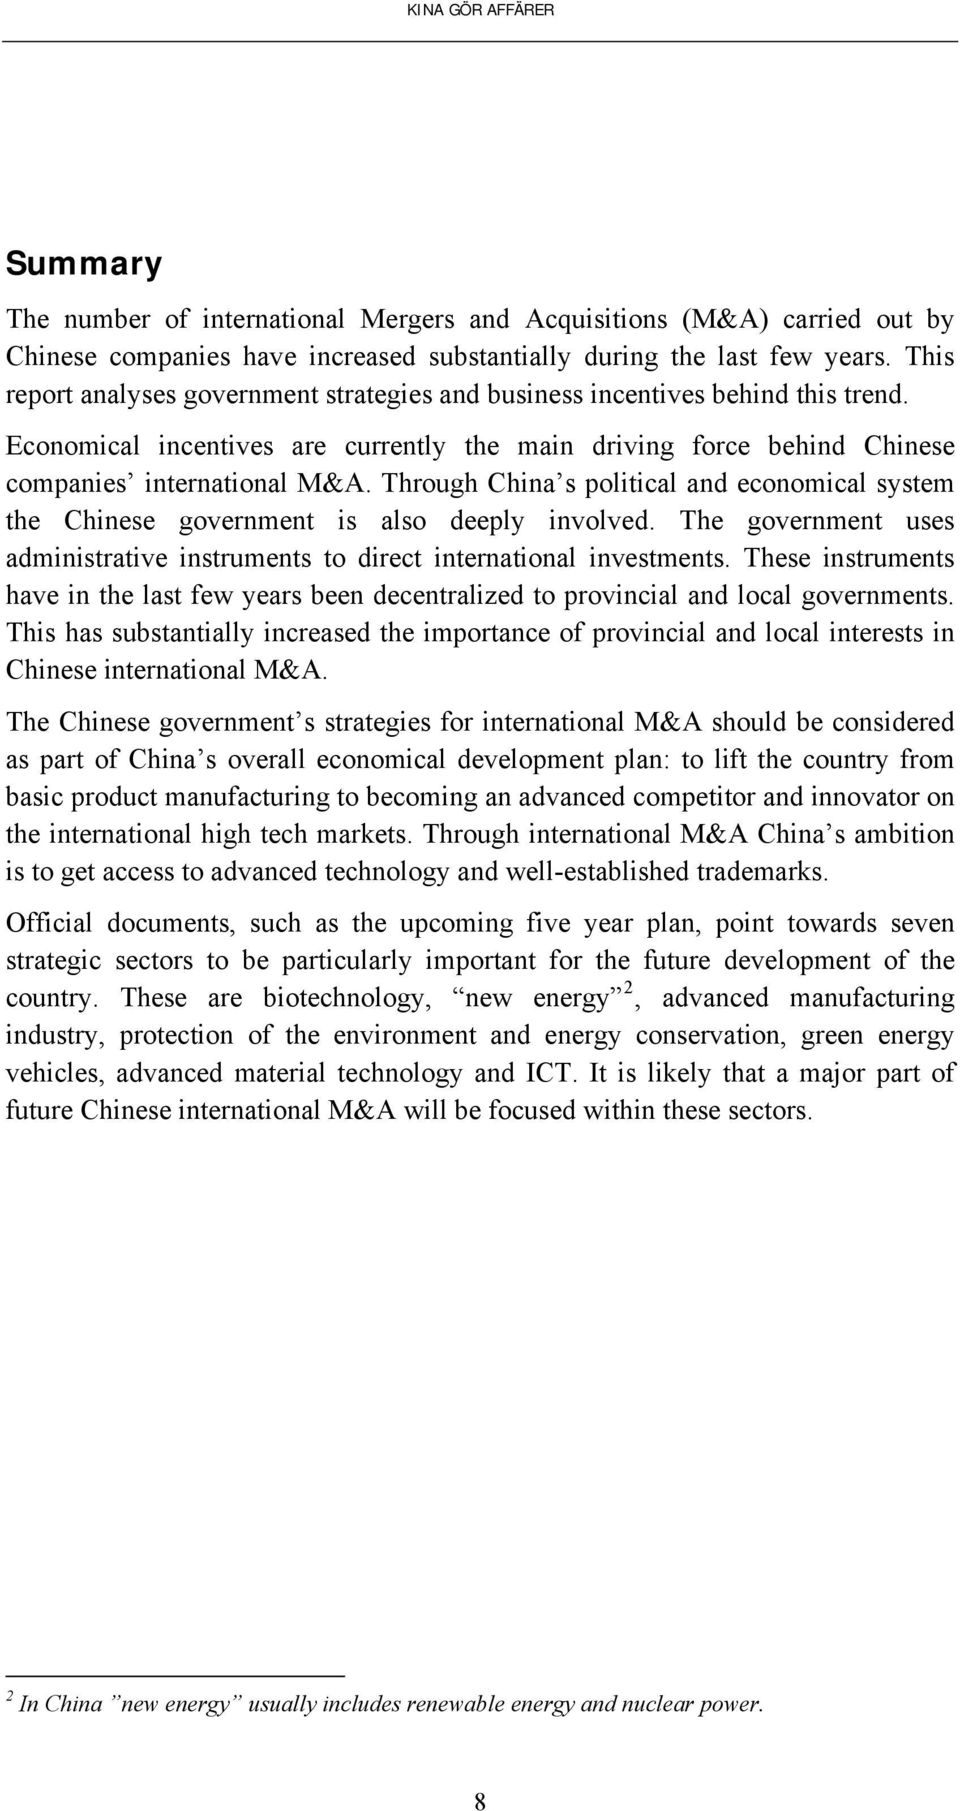 Through China s political and economical system the Chinese government is also deeply involved. The government uses administrative instruments to direct international investments.